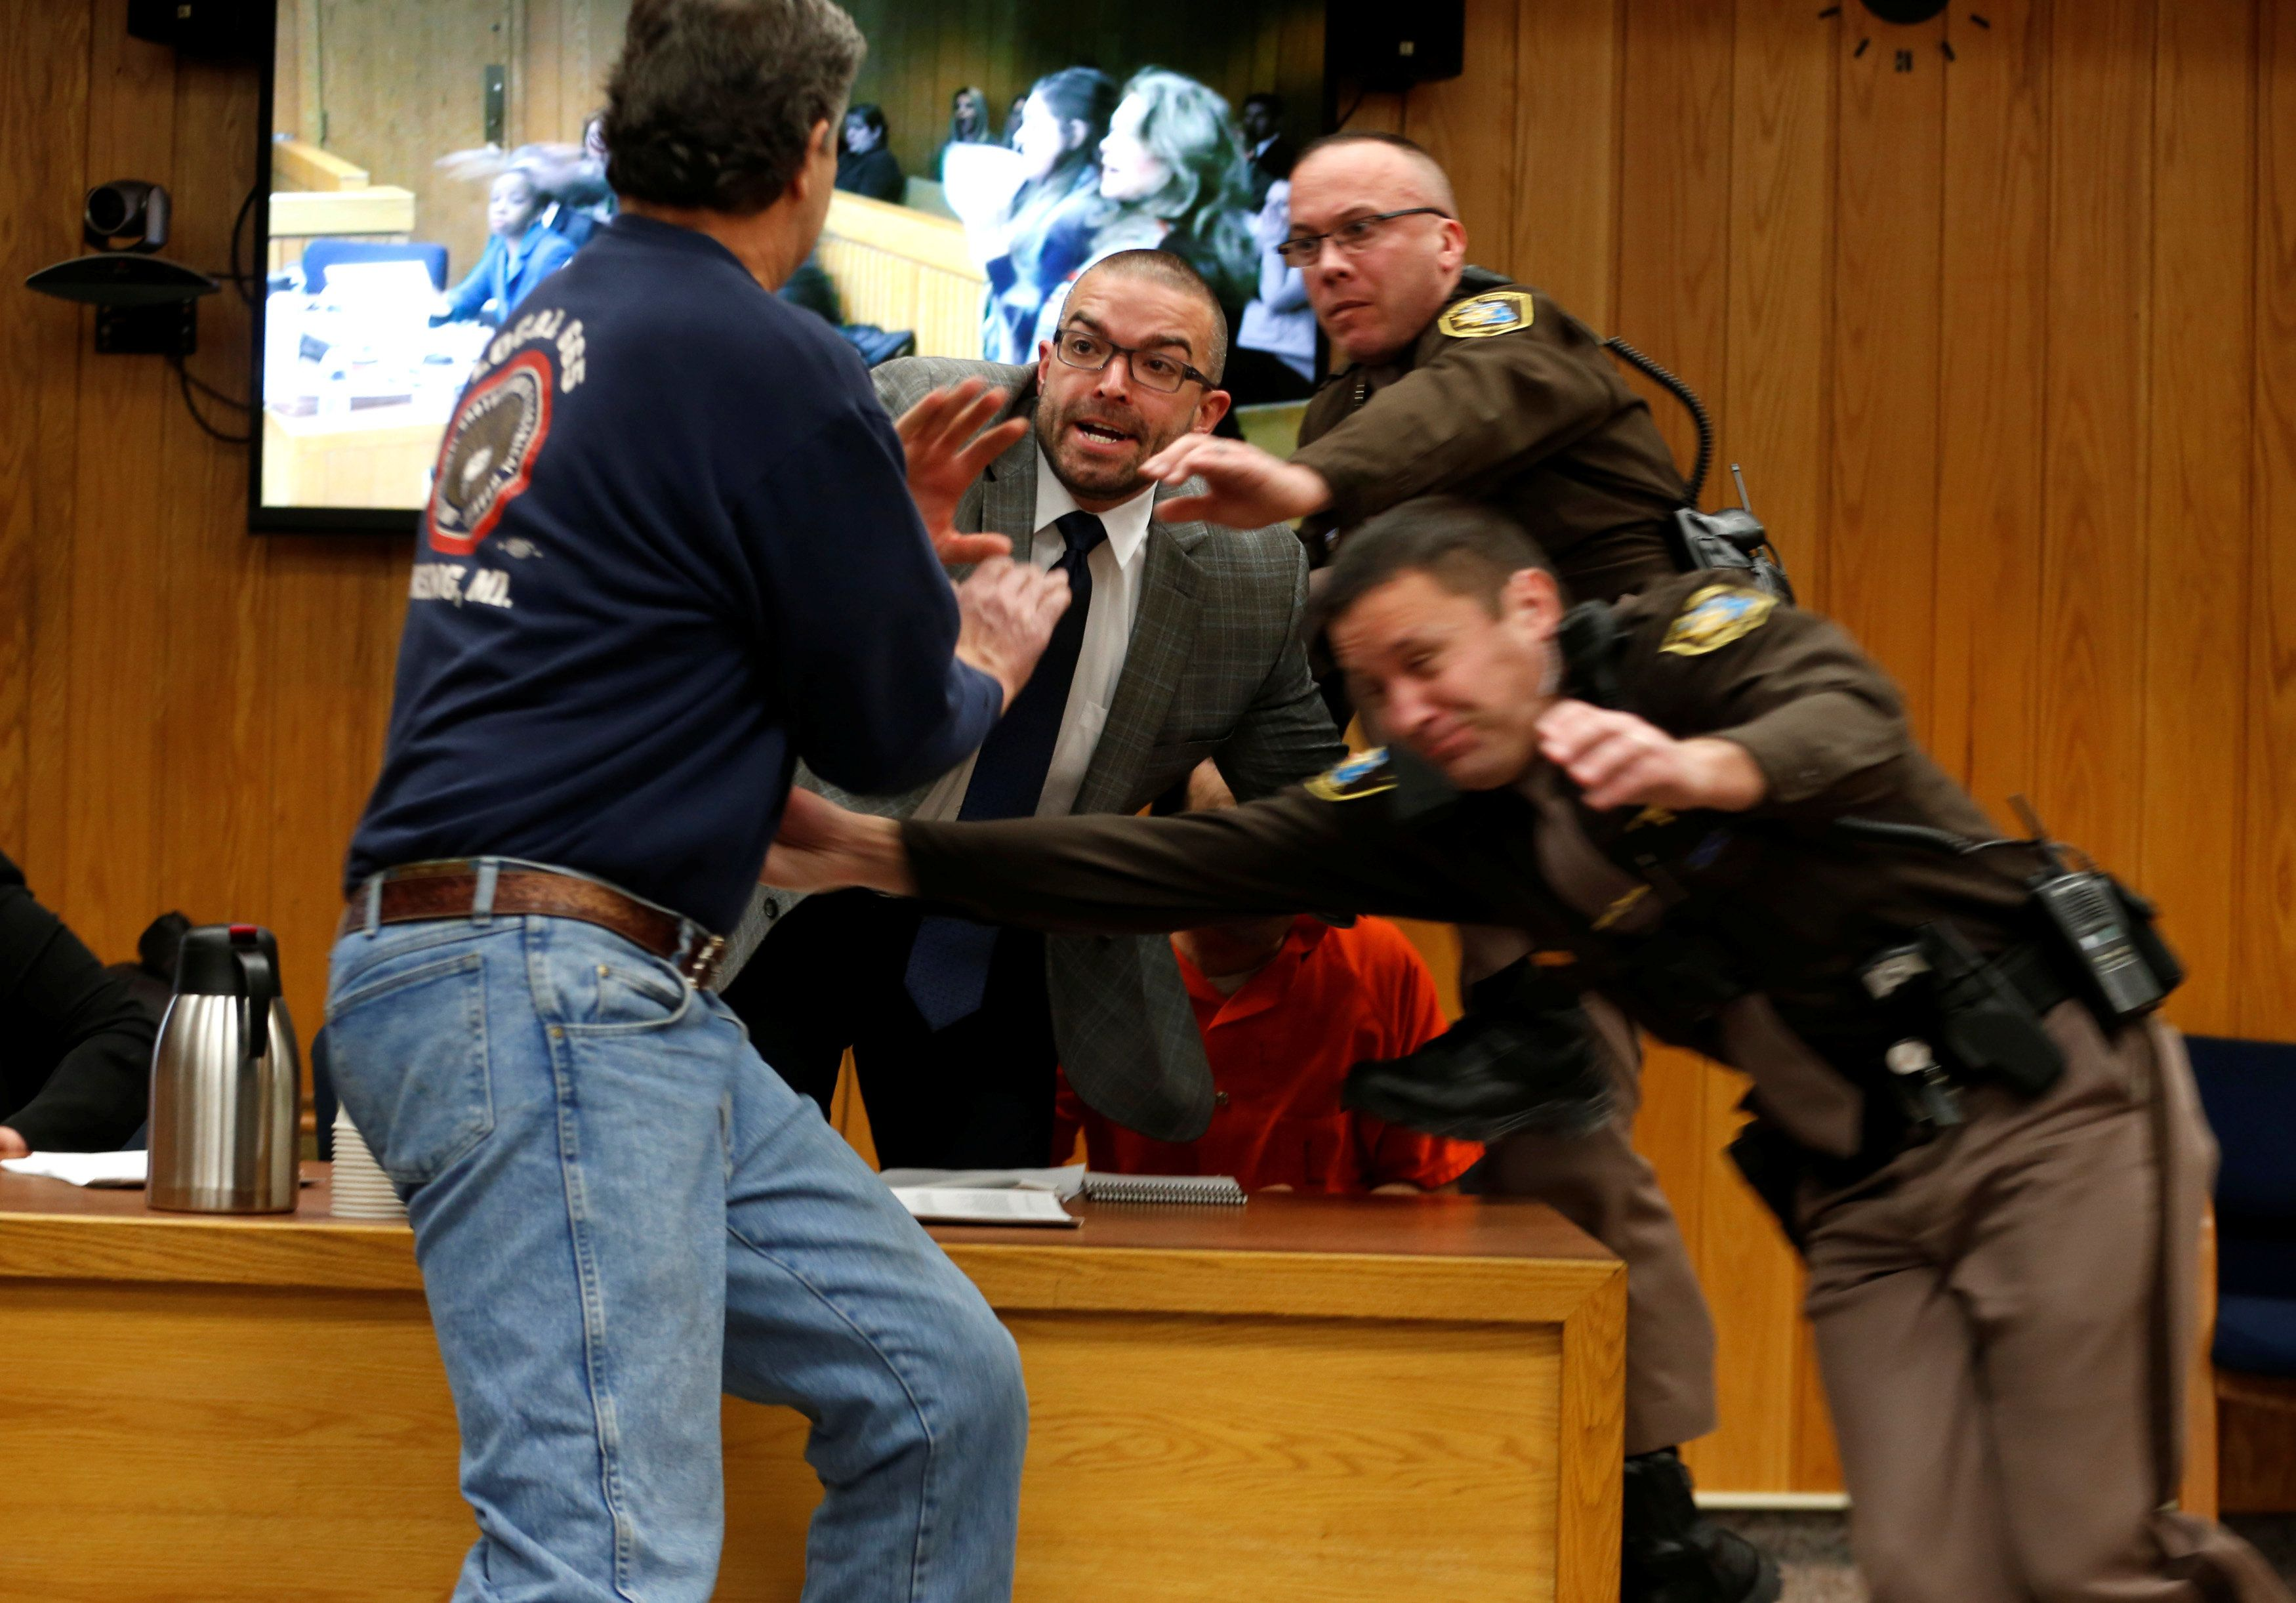 Randall Margraves, left, attempts to attack former USA Gymnastics doctor Larry Nassar (wearing orange)...